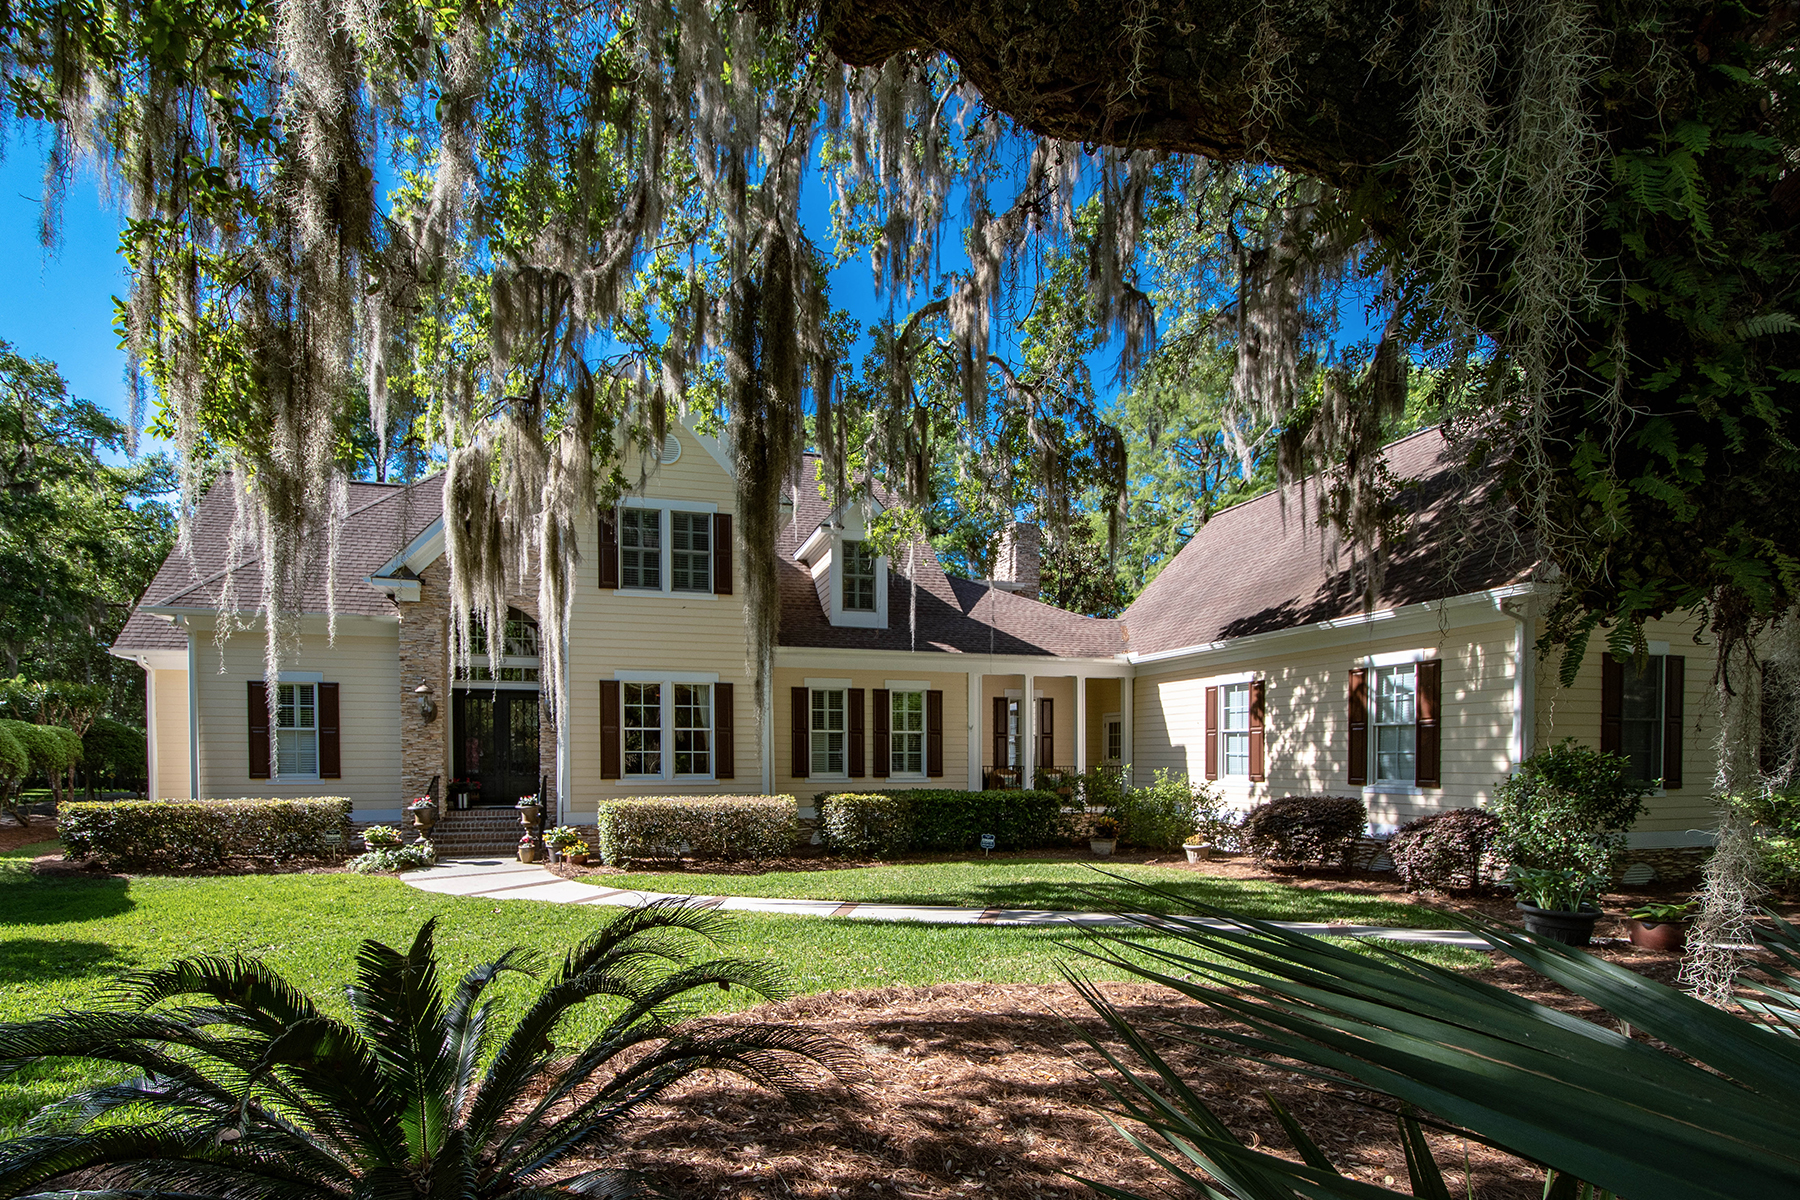 Single Family Homes for Sale at 509 Heston Point Drive Pawleys Island, South Carolina 29585 United States